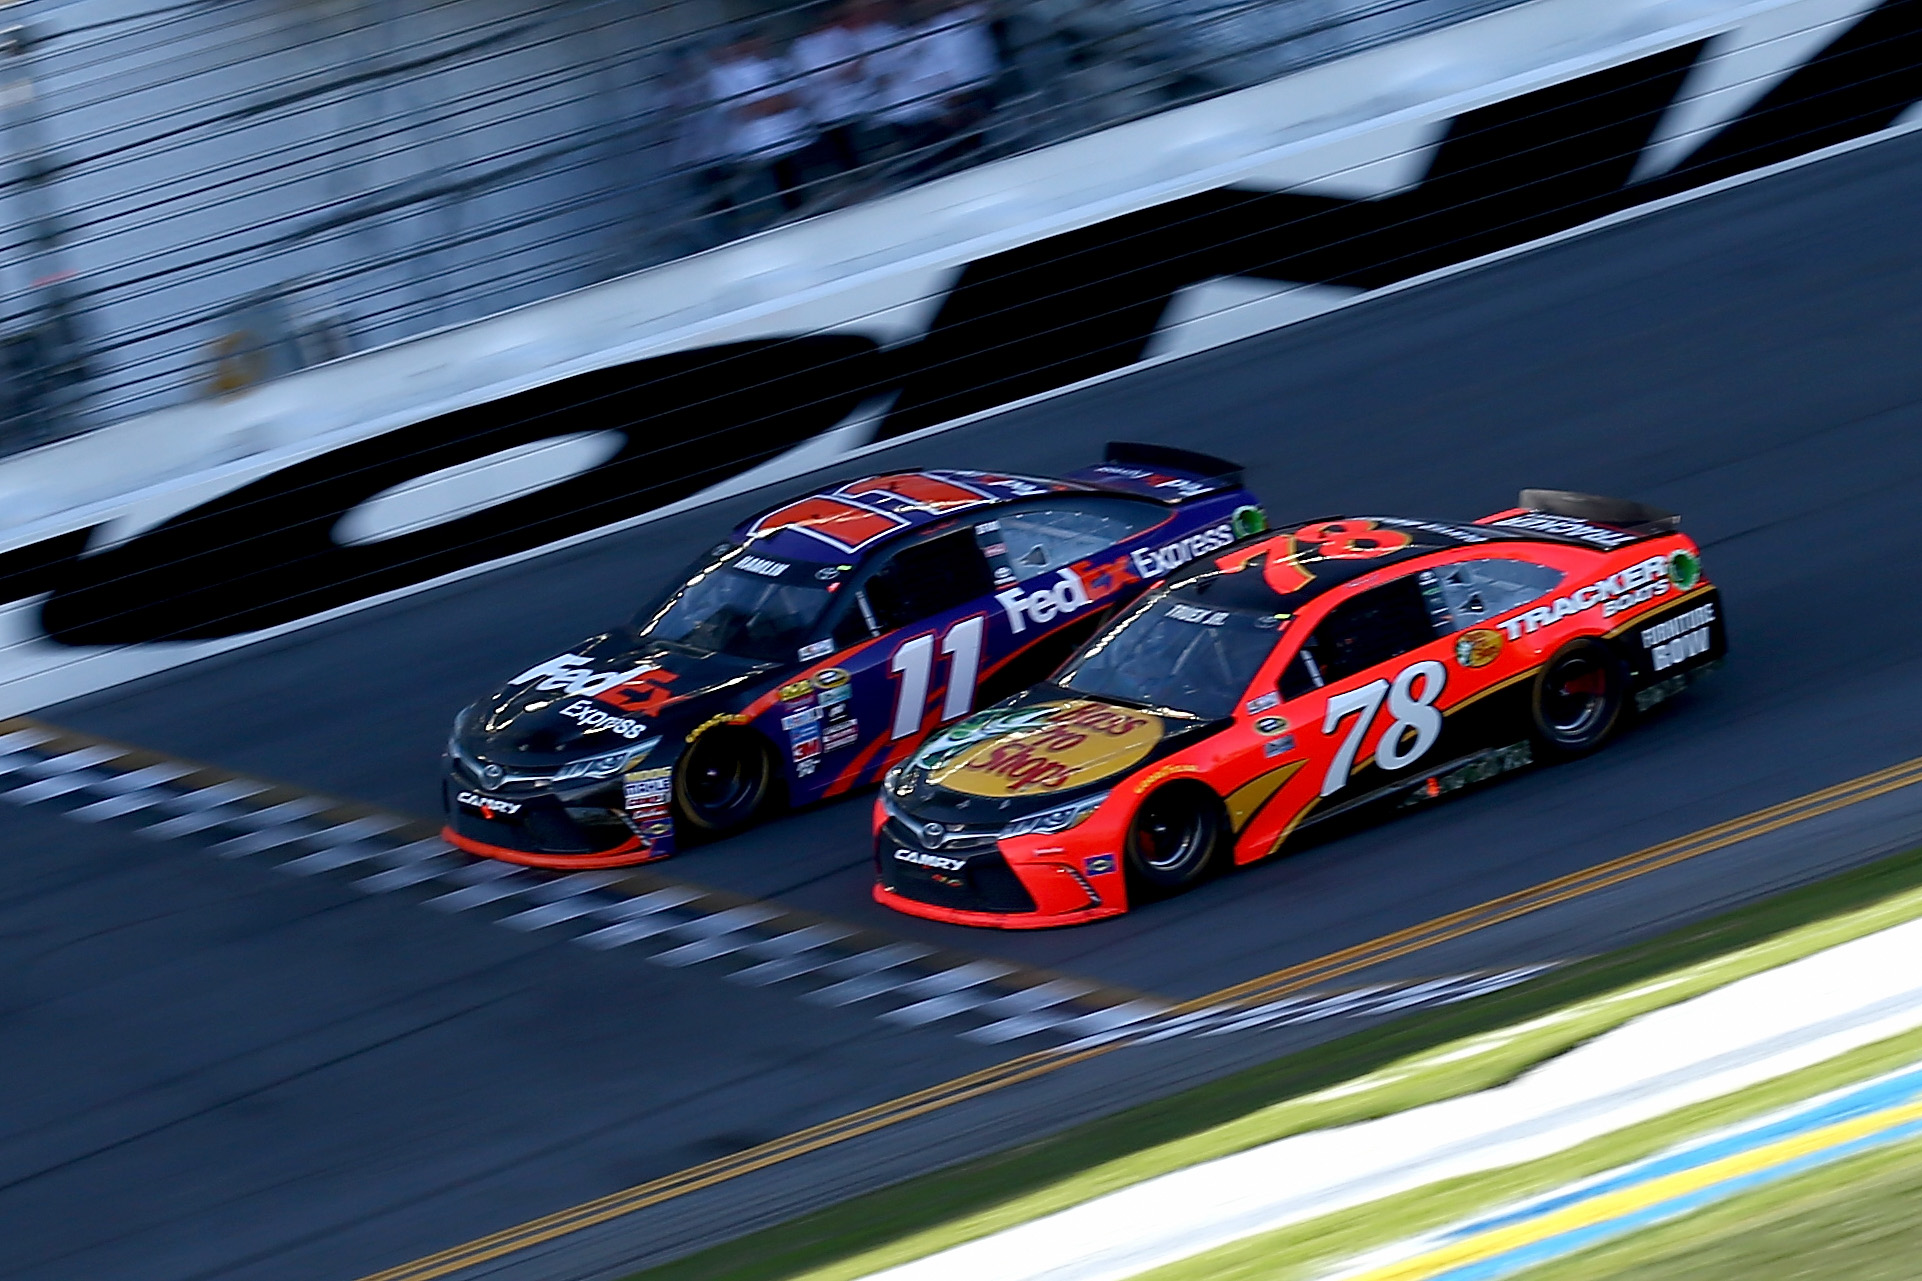 Denny Hamlin, driver of the #11 FedEx Express Toyota, takes the checkered flag ahead of Martin Truex Jr., driver of the #78 Bass Pro Shops/Tracker Boats Toyota, to win the NASCAR Sprint Cup Series Daytona 500 on Feb. 21, 2016 in Daytona Beach, Fla.